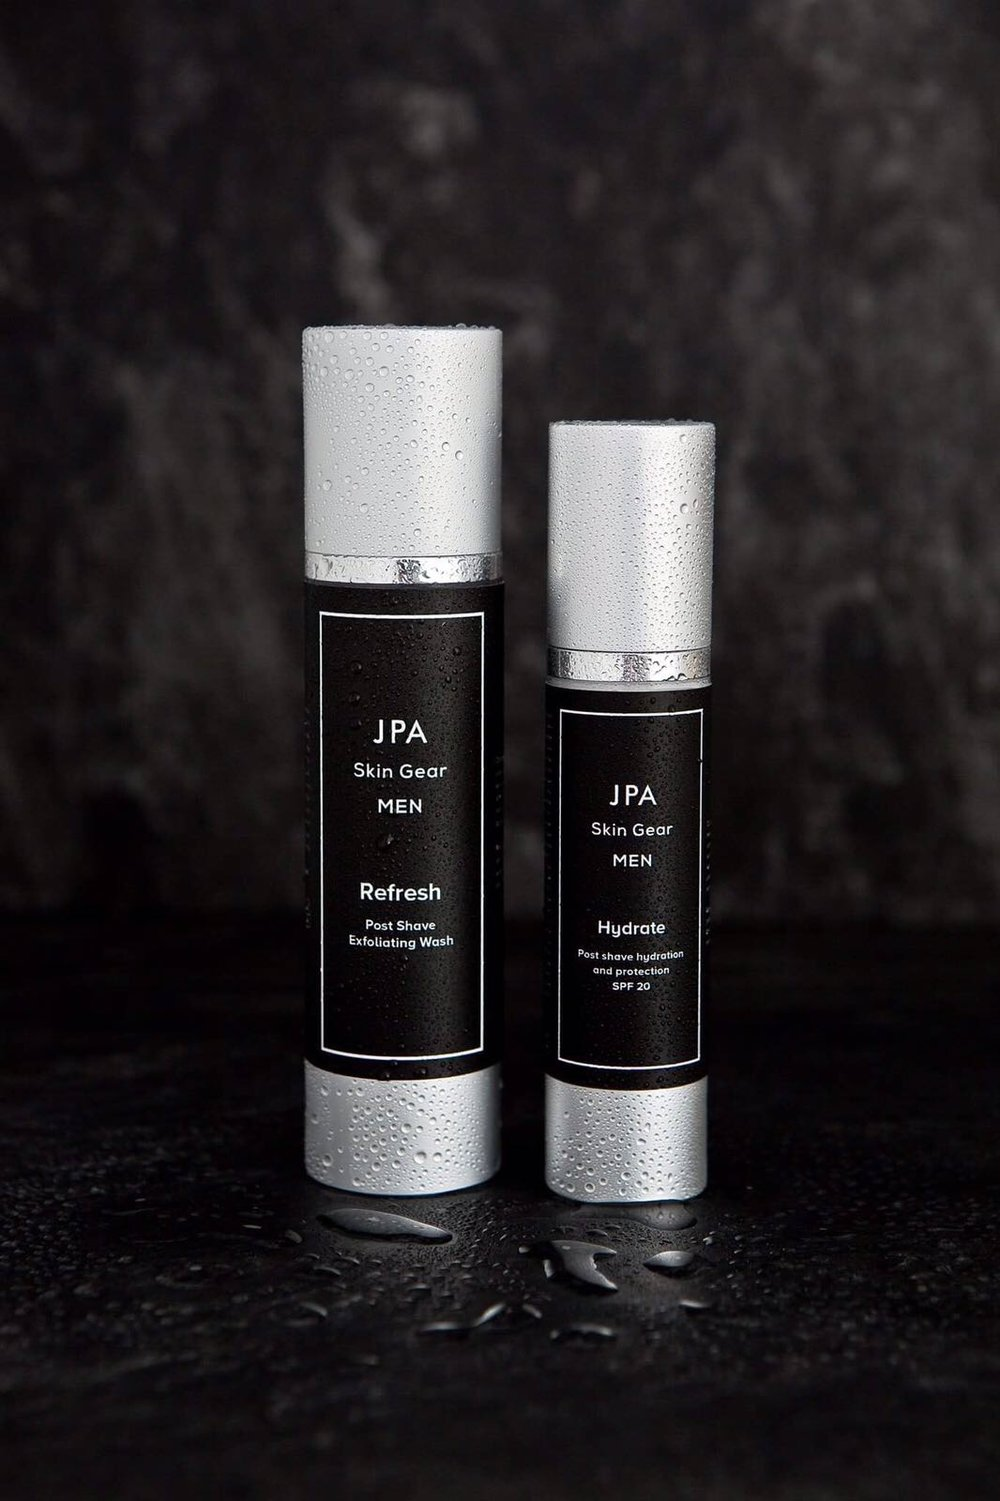 Post Shave Hydration & Protection - Our JPA Skin Gear range is brand new to the market and already hugely popular. When shaving, you draw a lot of moisture out of your skin, leaving the skin dry, irritable and sensitive. This can also lead to looking aged. Hydrate is very effective at restoring the moisture to your face. There's nothing worse than having tight, sensitive skin around your face after shaving. Hydrate will leave your skin looking and feeling supple. Even better - hydrate includes SPF 20, so protects your skin from harmful sun rays, which age the skin.